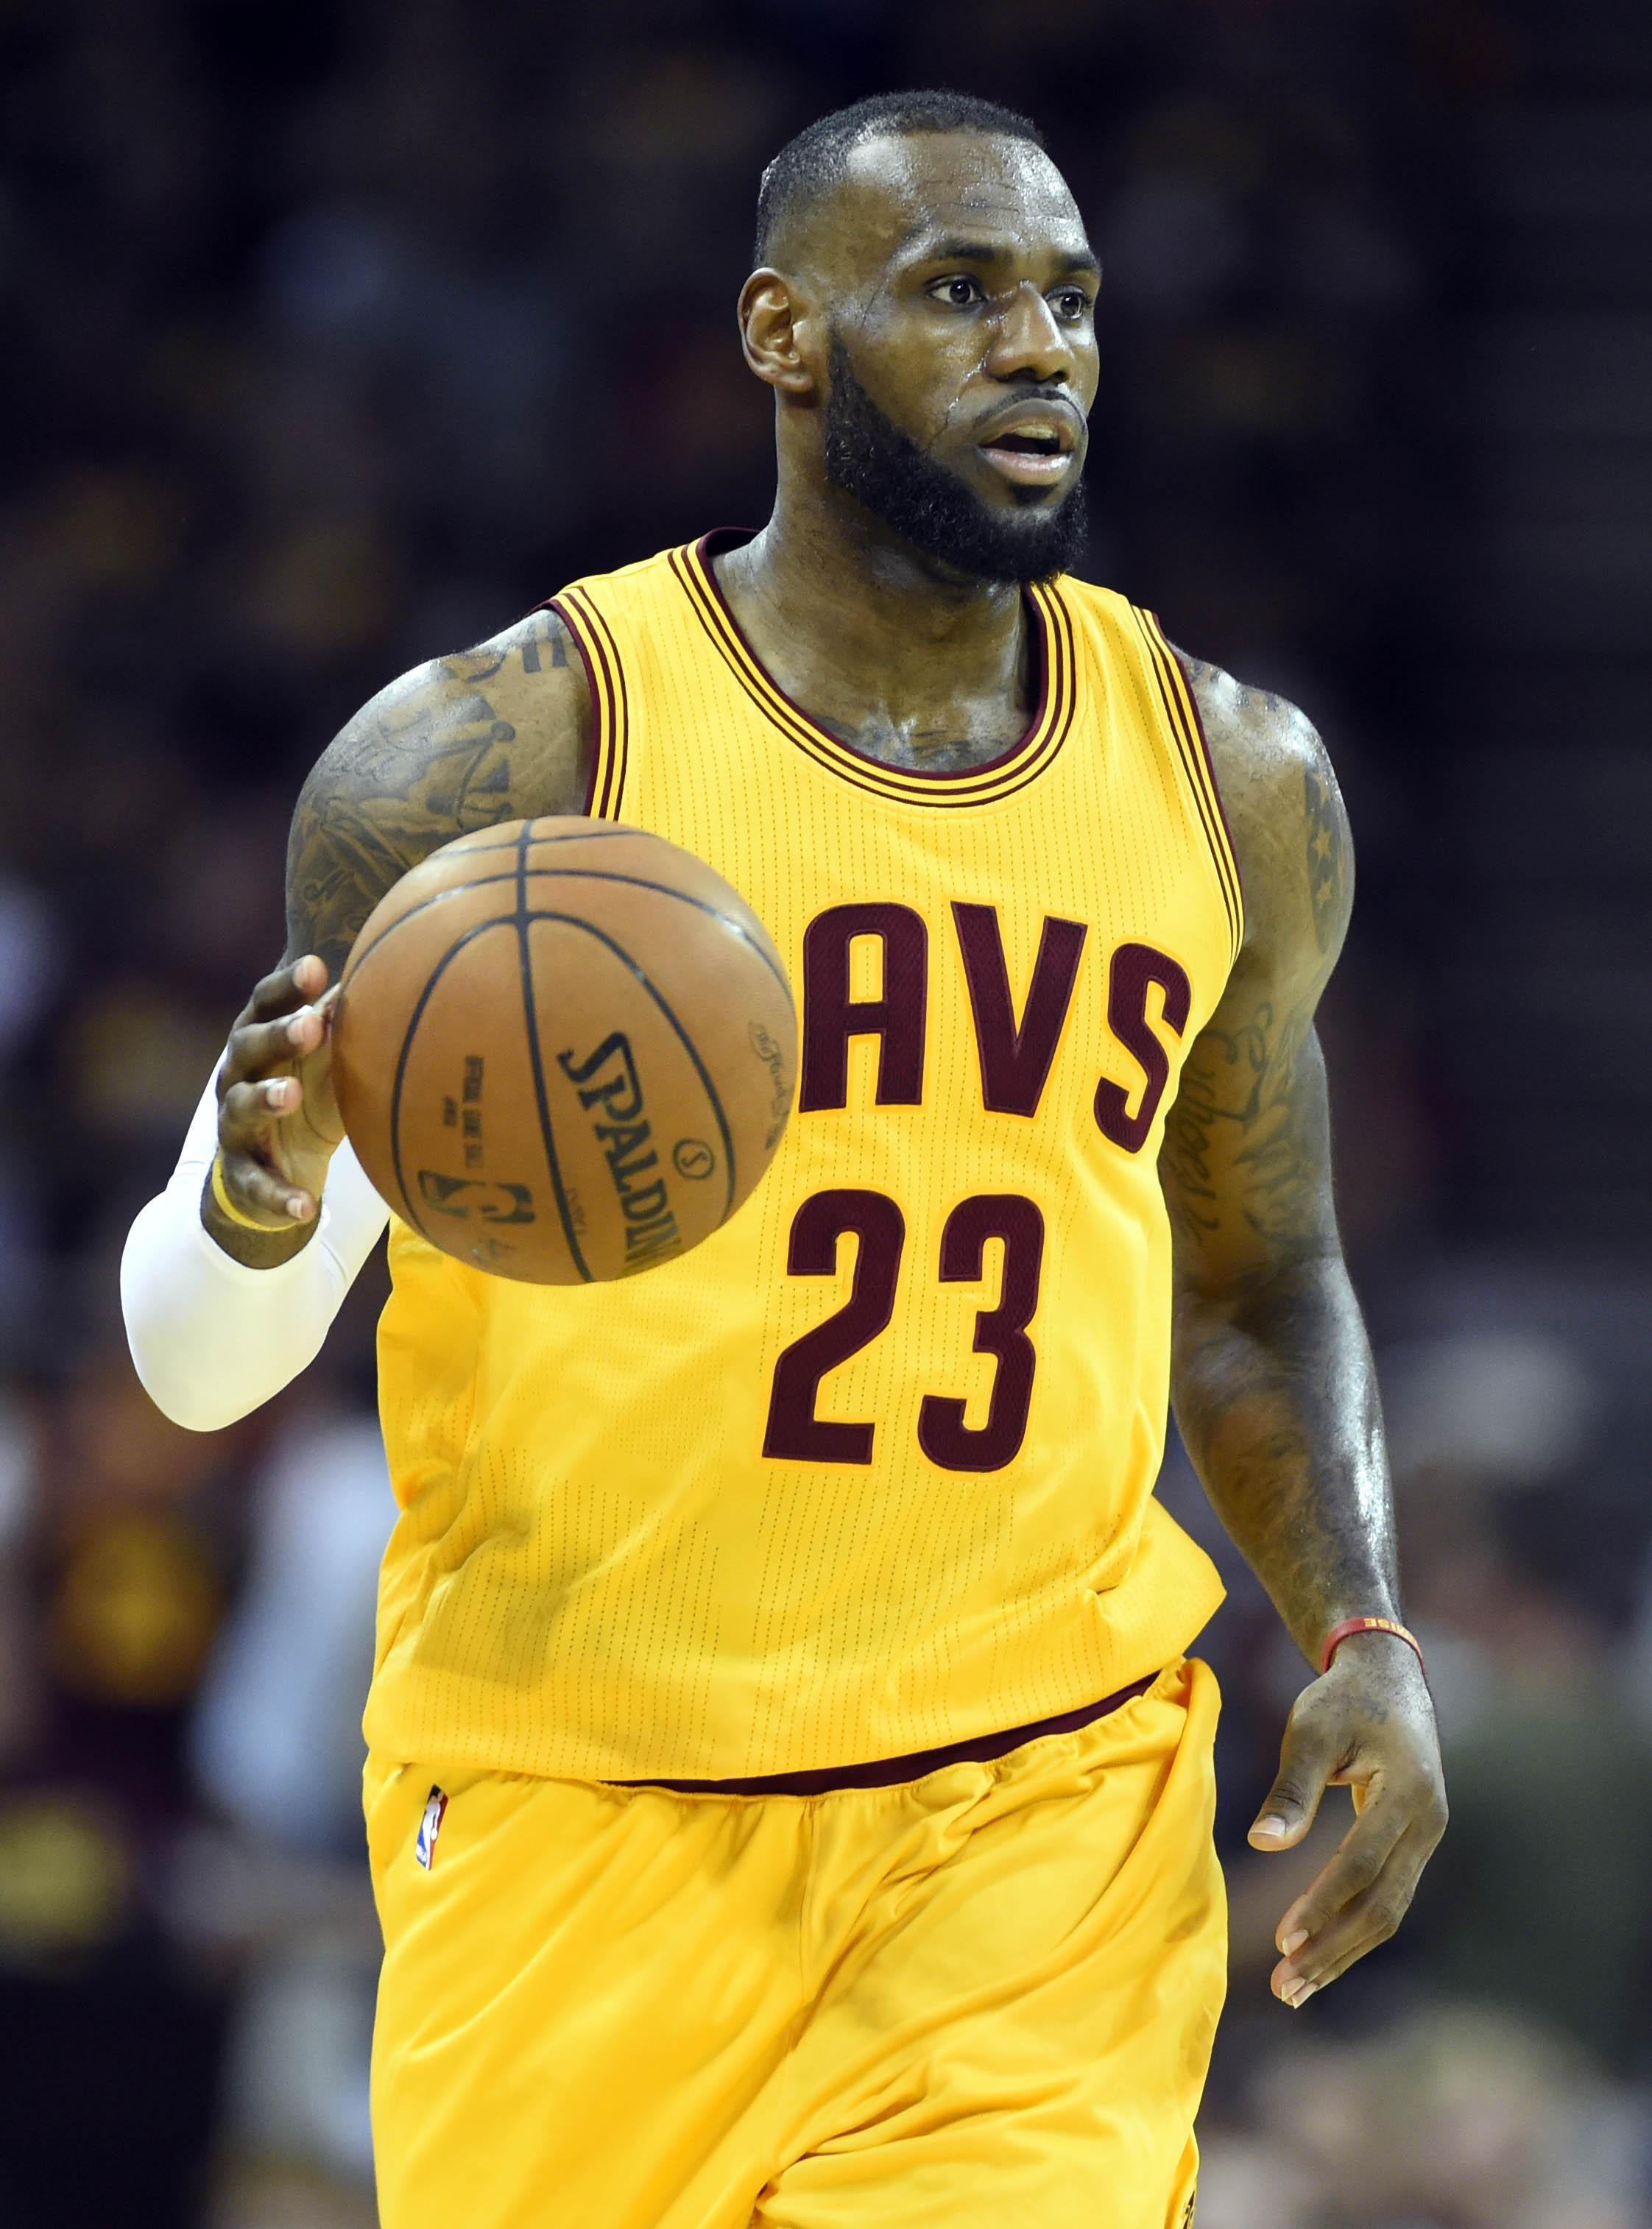 Nba Finals 2015 Central Time | Basketball Scores